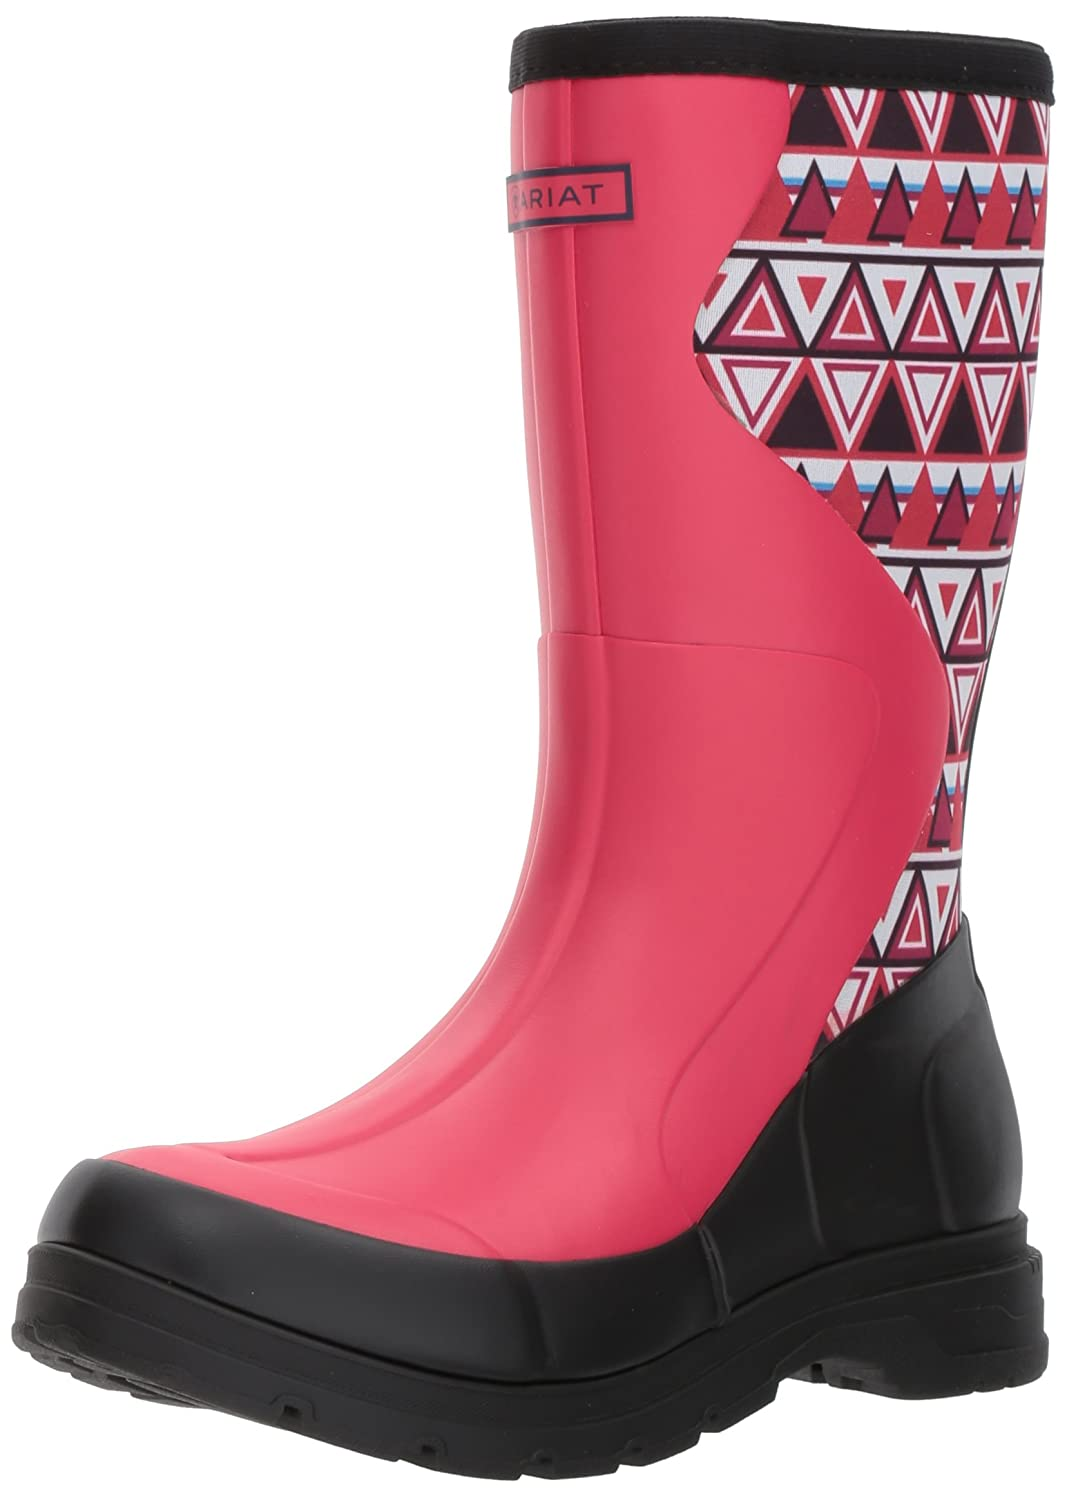 Ariat Women's Springfield Rubber Work Boot B01MRBLN2N 9.5 B(M) US|Hot Pink